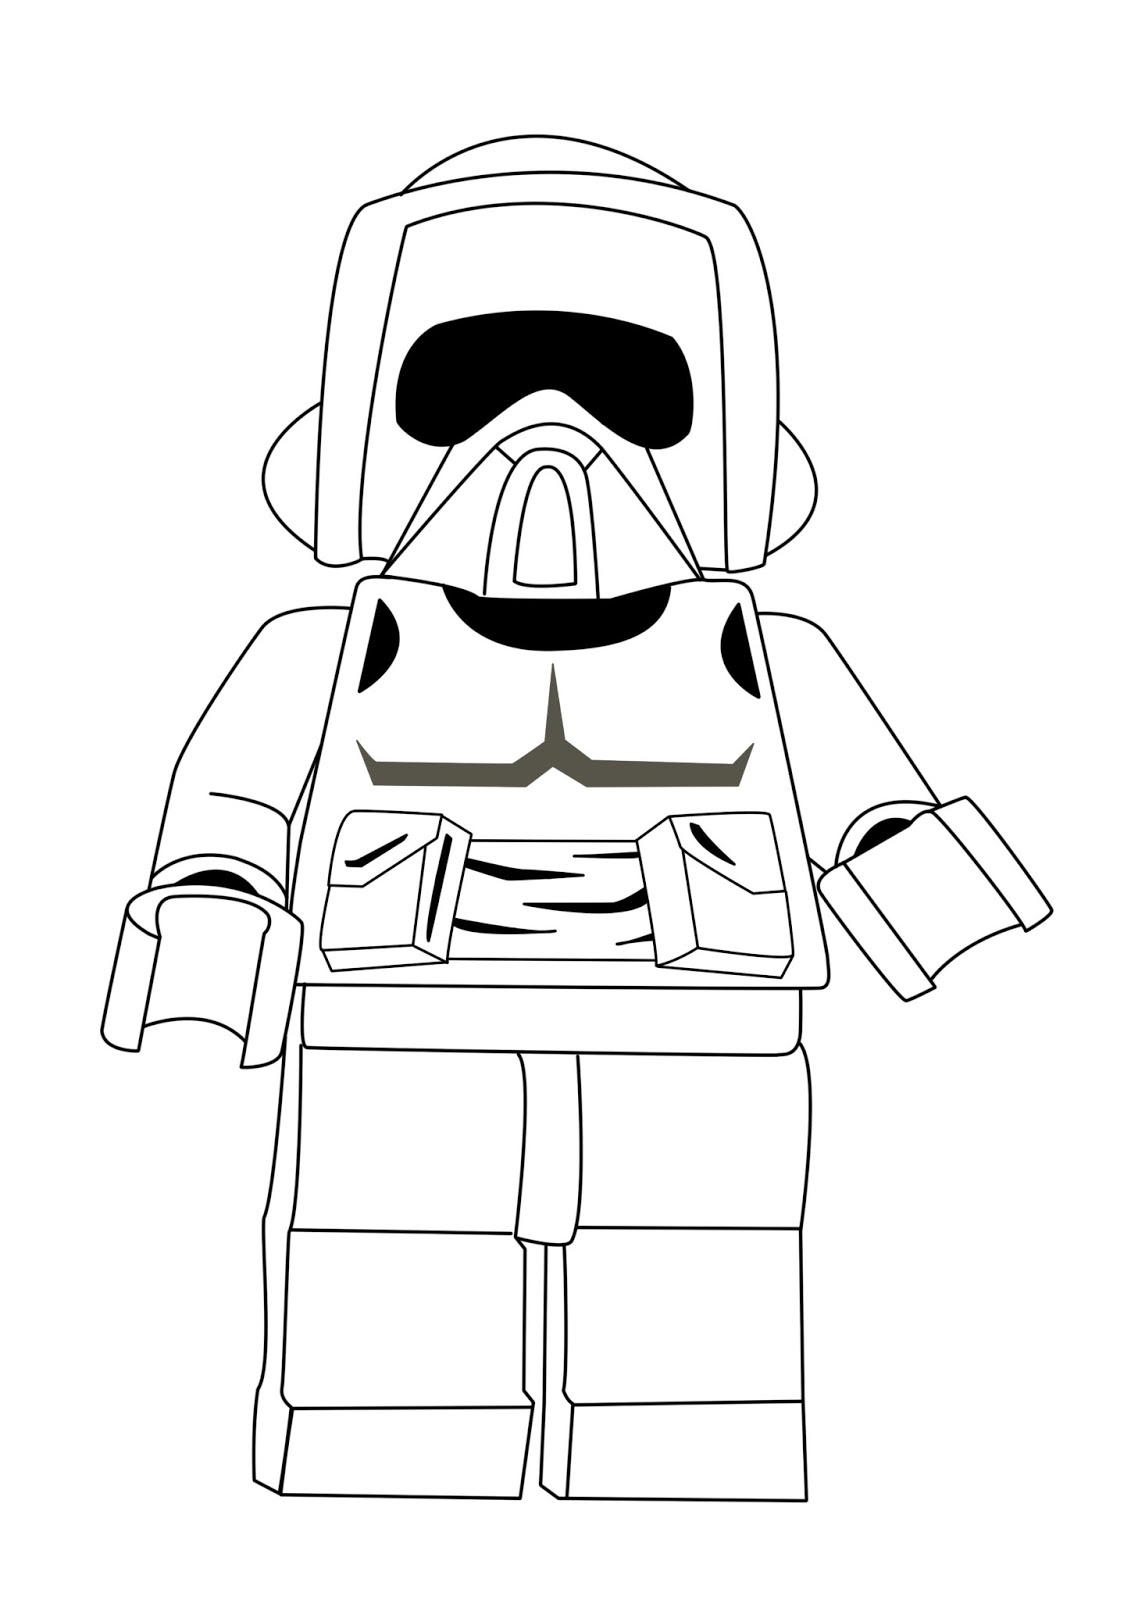 lego star wars pictures to color lego star wars coloring pages bestappsforkidscom color wars pictures star to lego